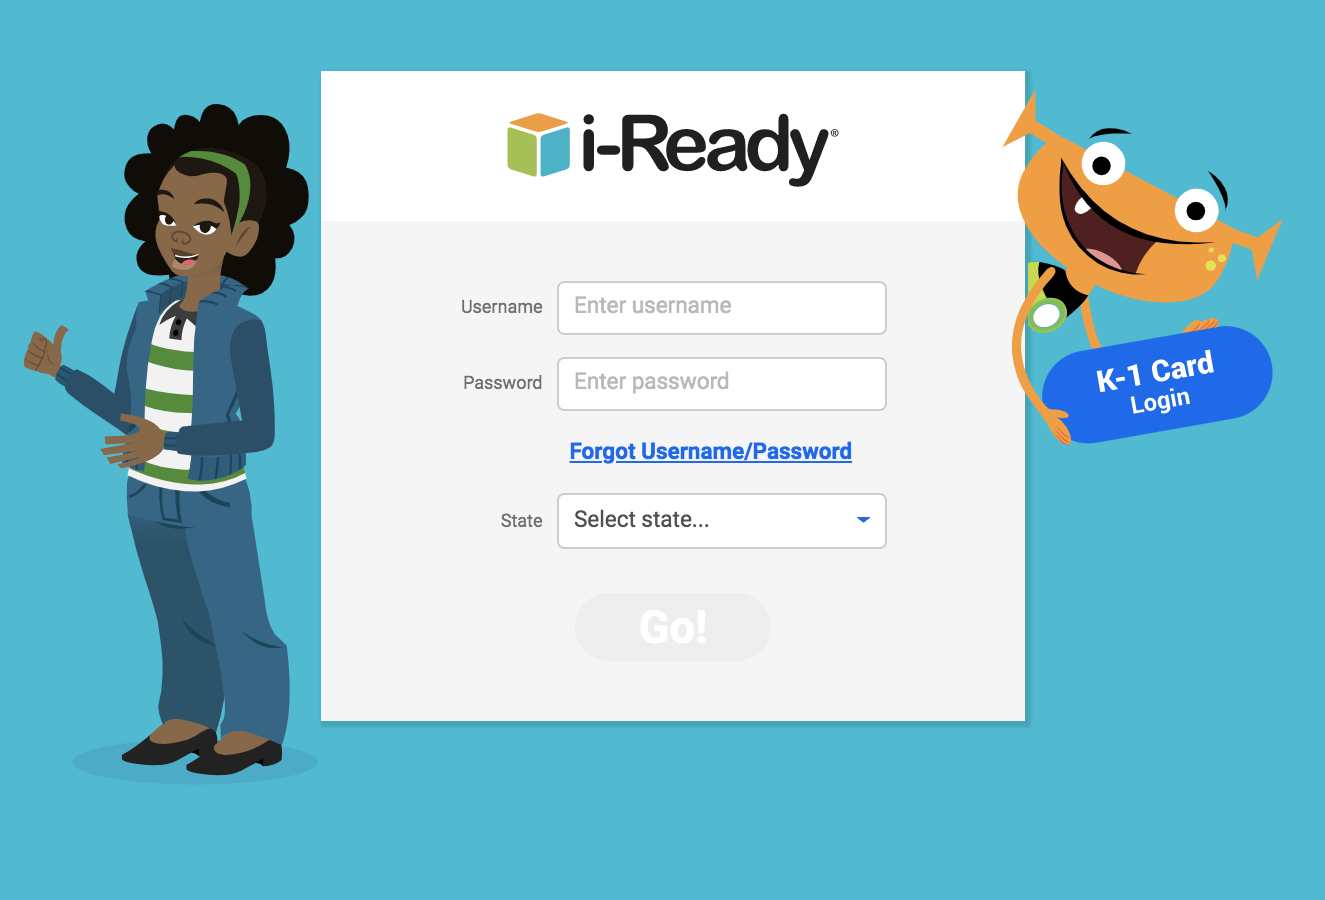 Open the i-Ready login page in a separate tab.